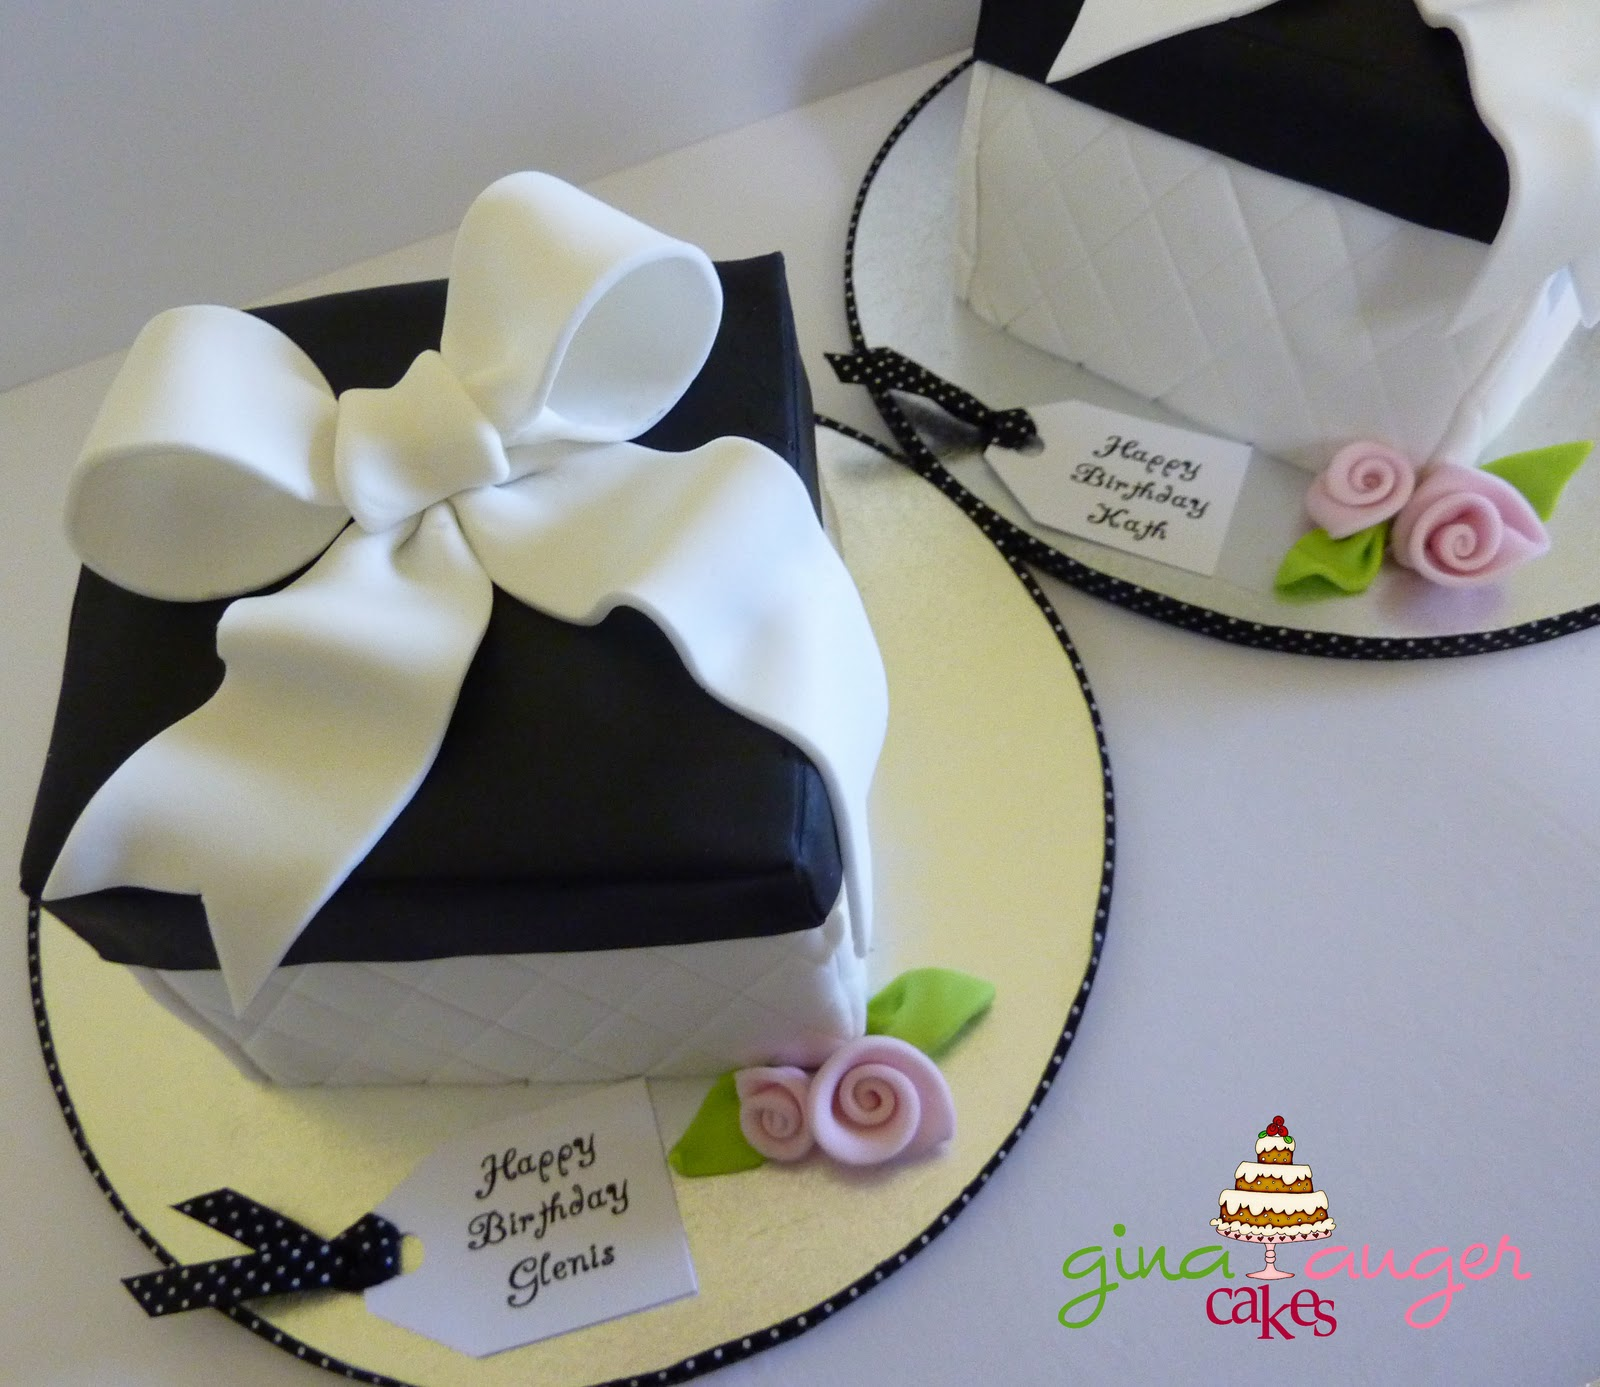 Top that mini black white gift box cakes mini black white gift box cakes negle